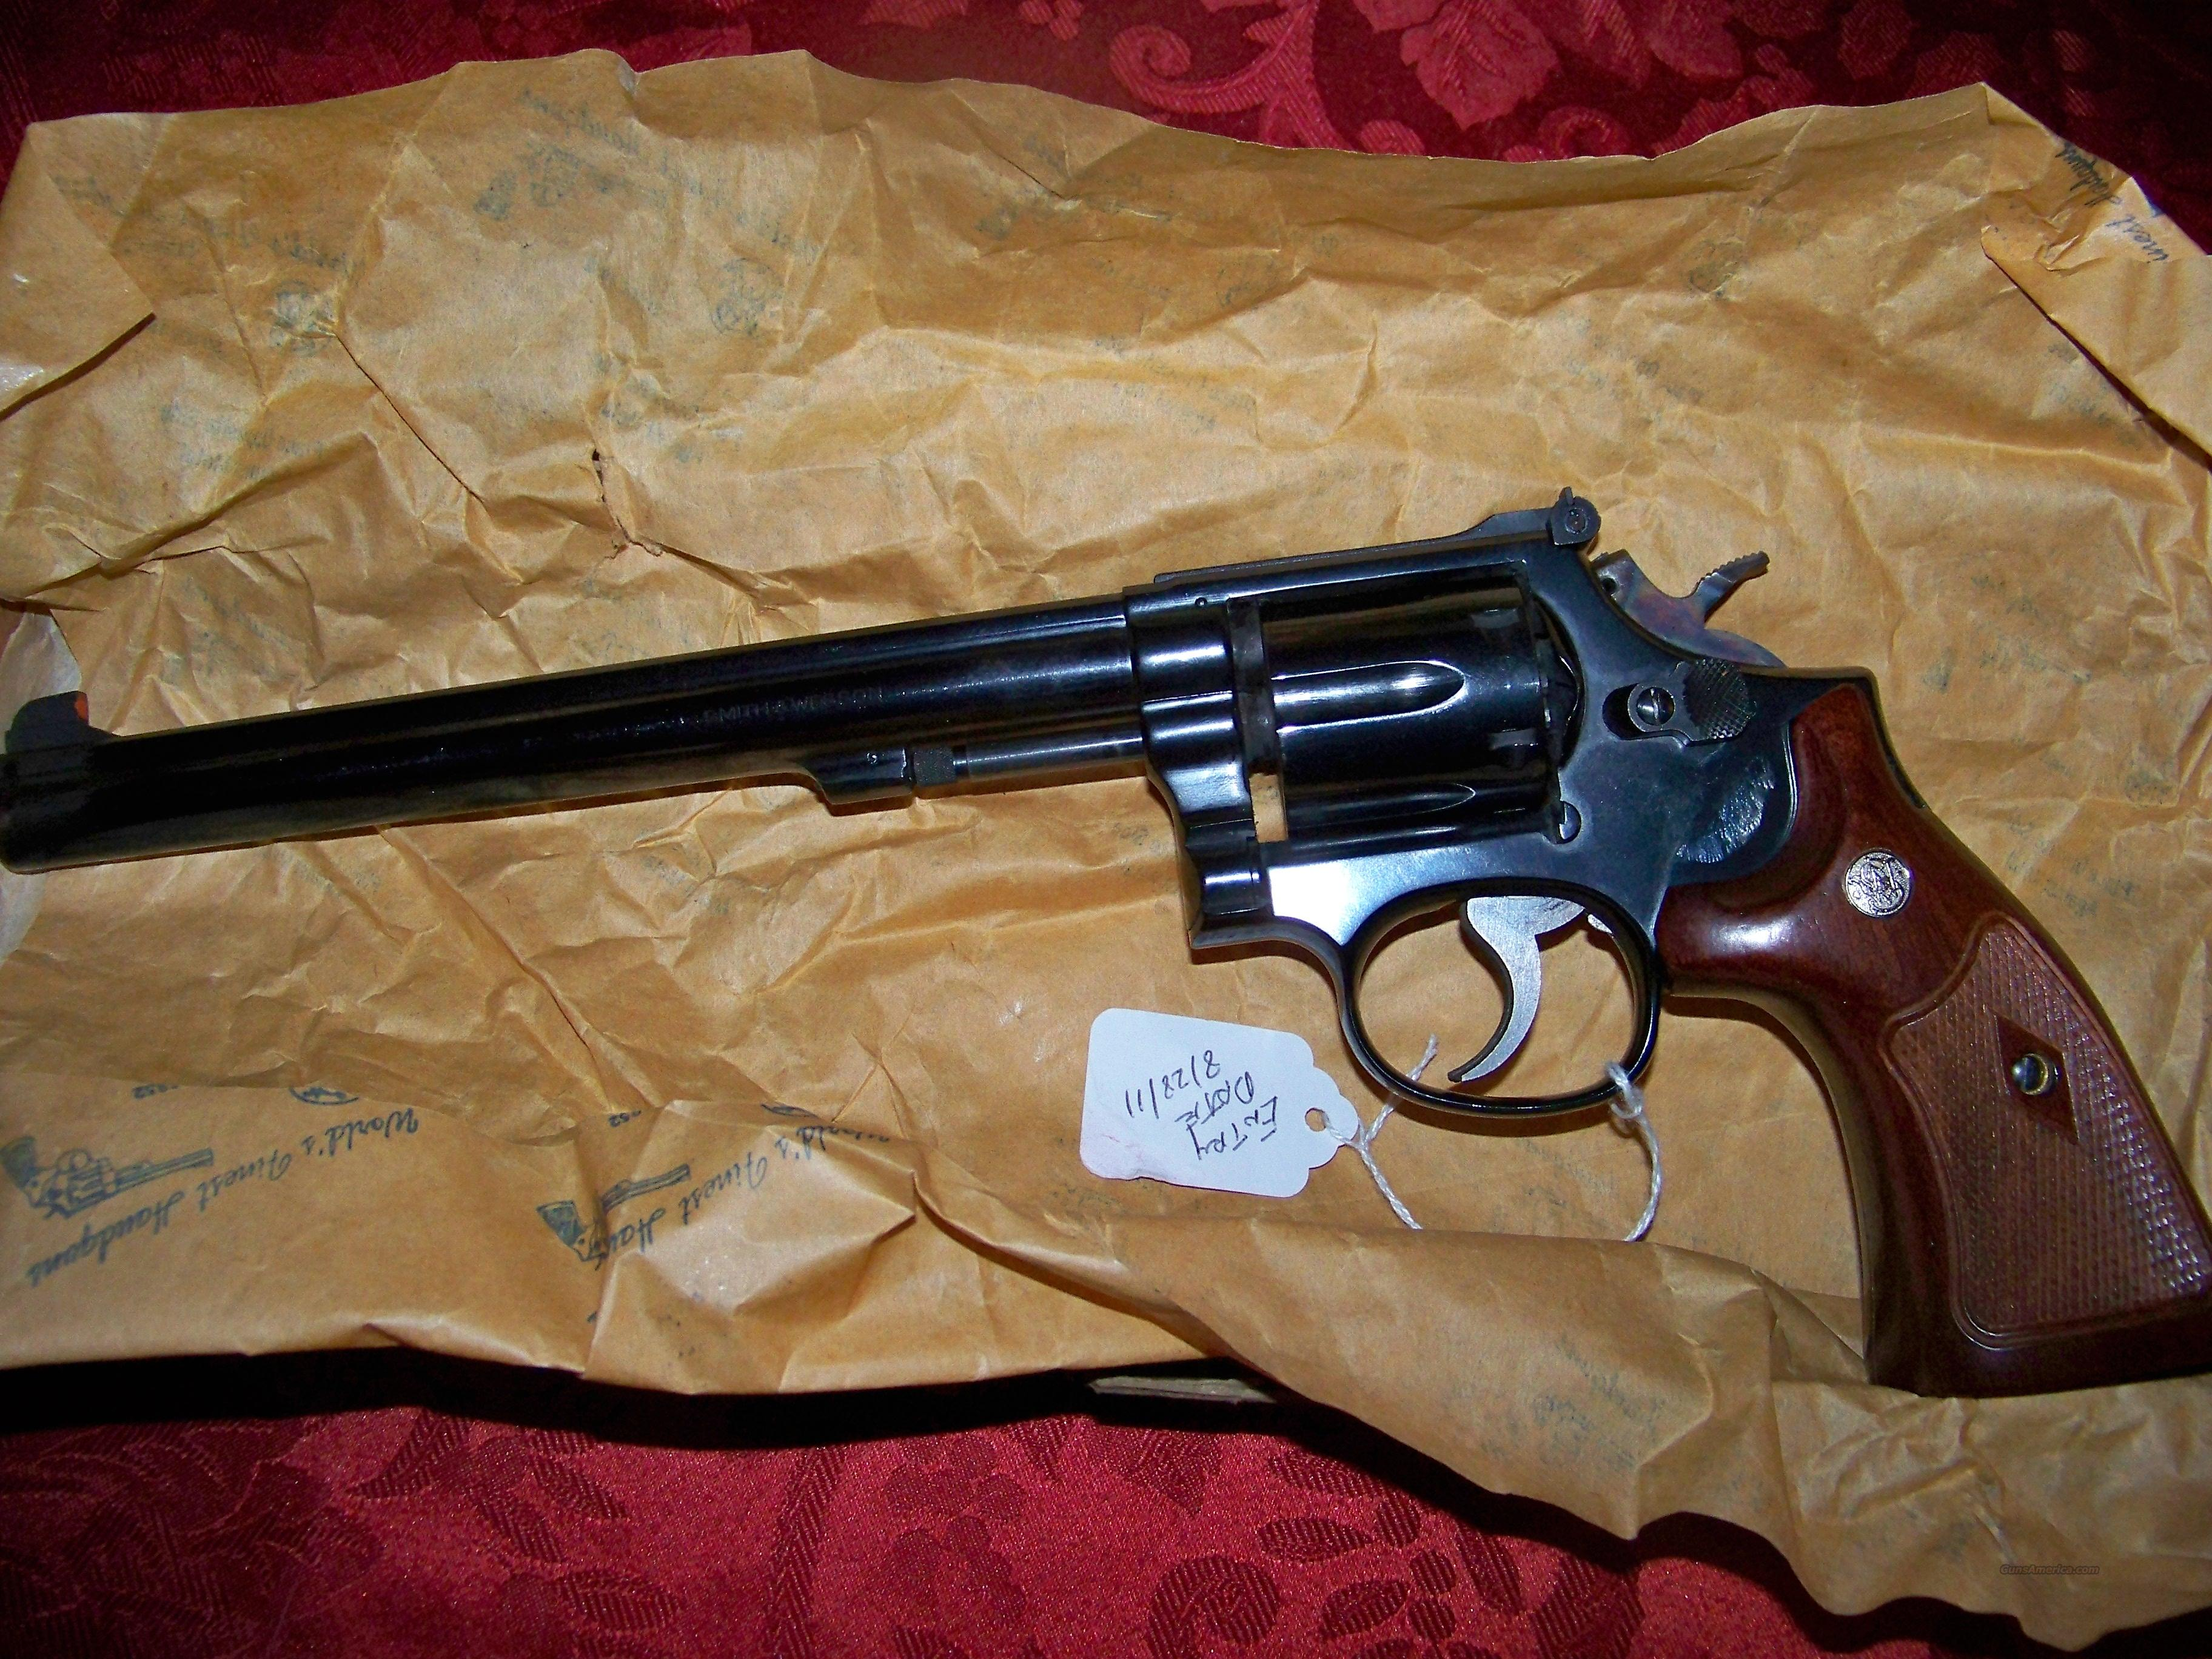 SMITH & WESSON MODEL 14-4 WITH BOX  Guns > Pistols > Smith & Wesson Revolvers > Full Frame Revolver